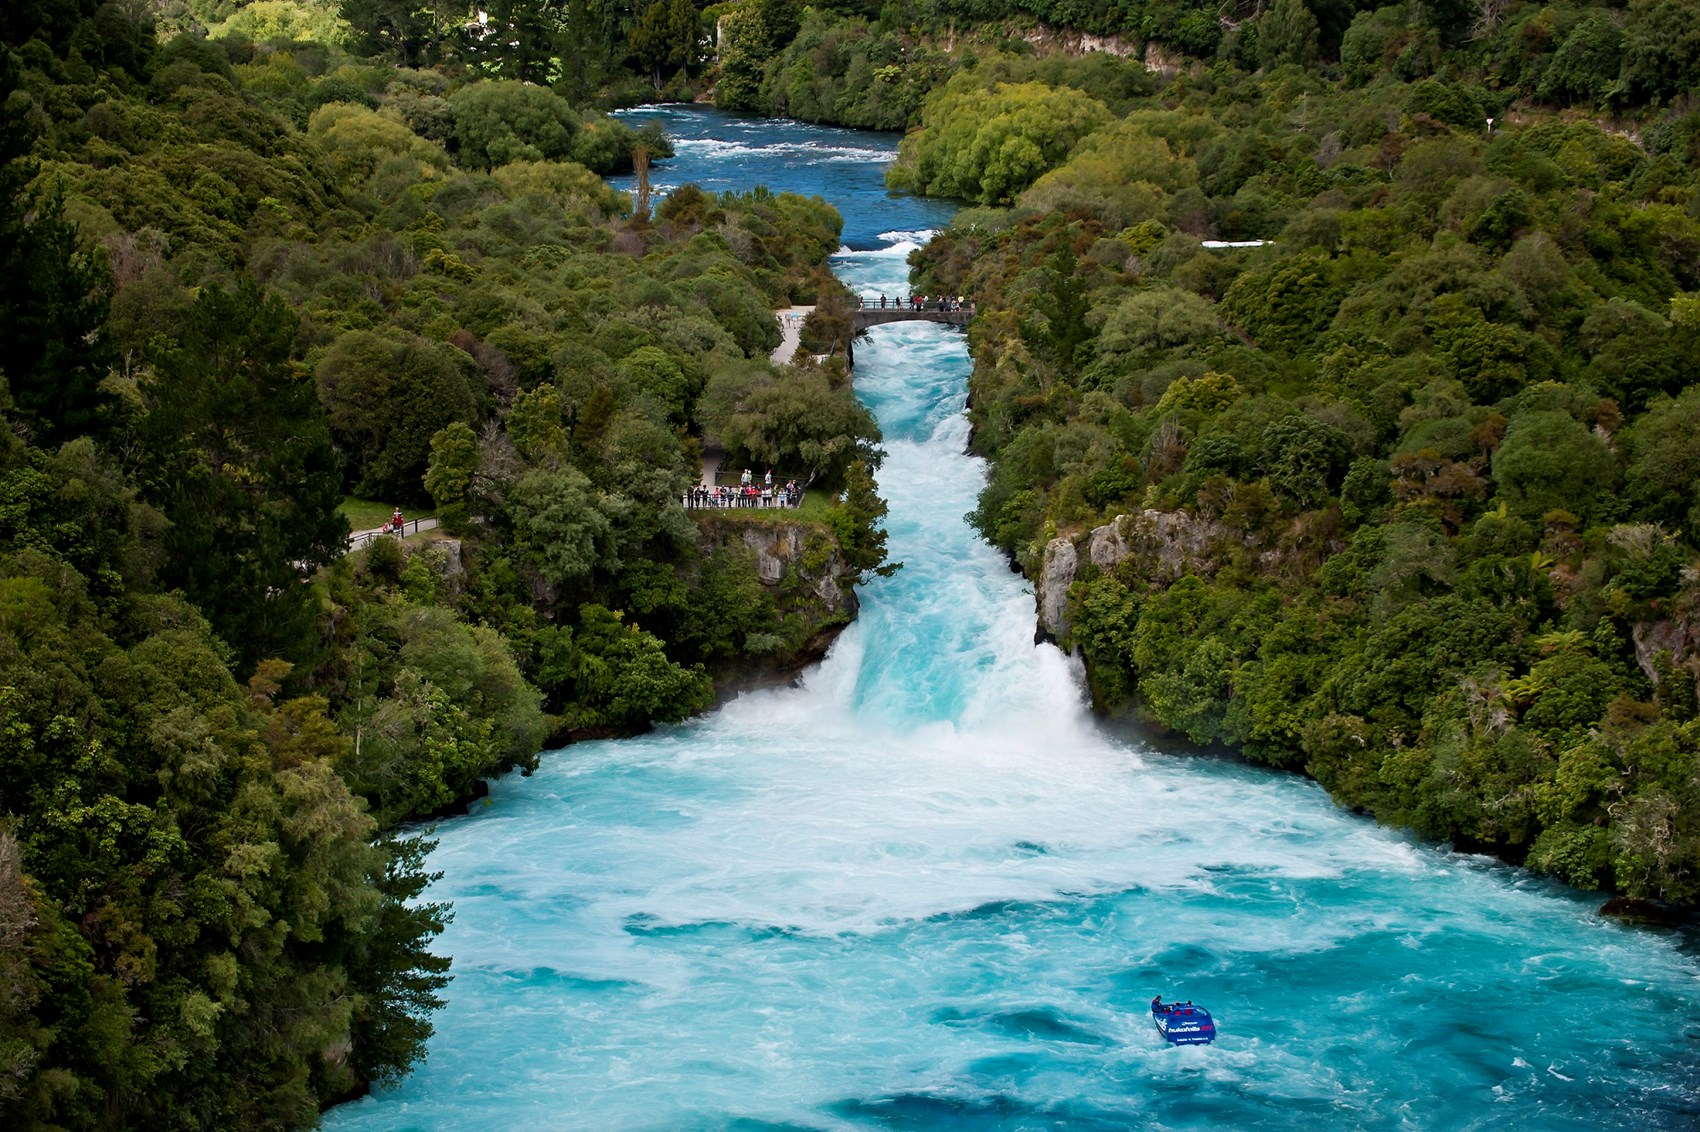 A Day Spent Taupo - Love Taupo - Globetrotting horse riding holidays